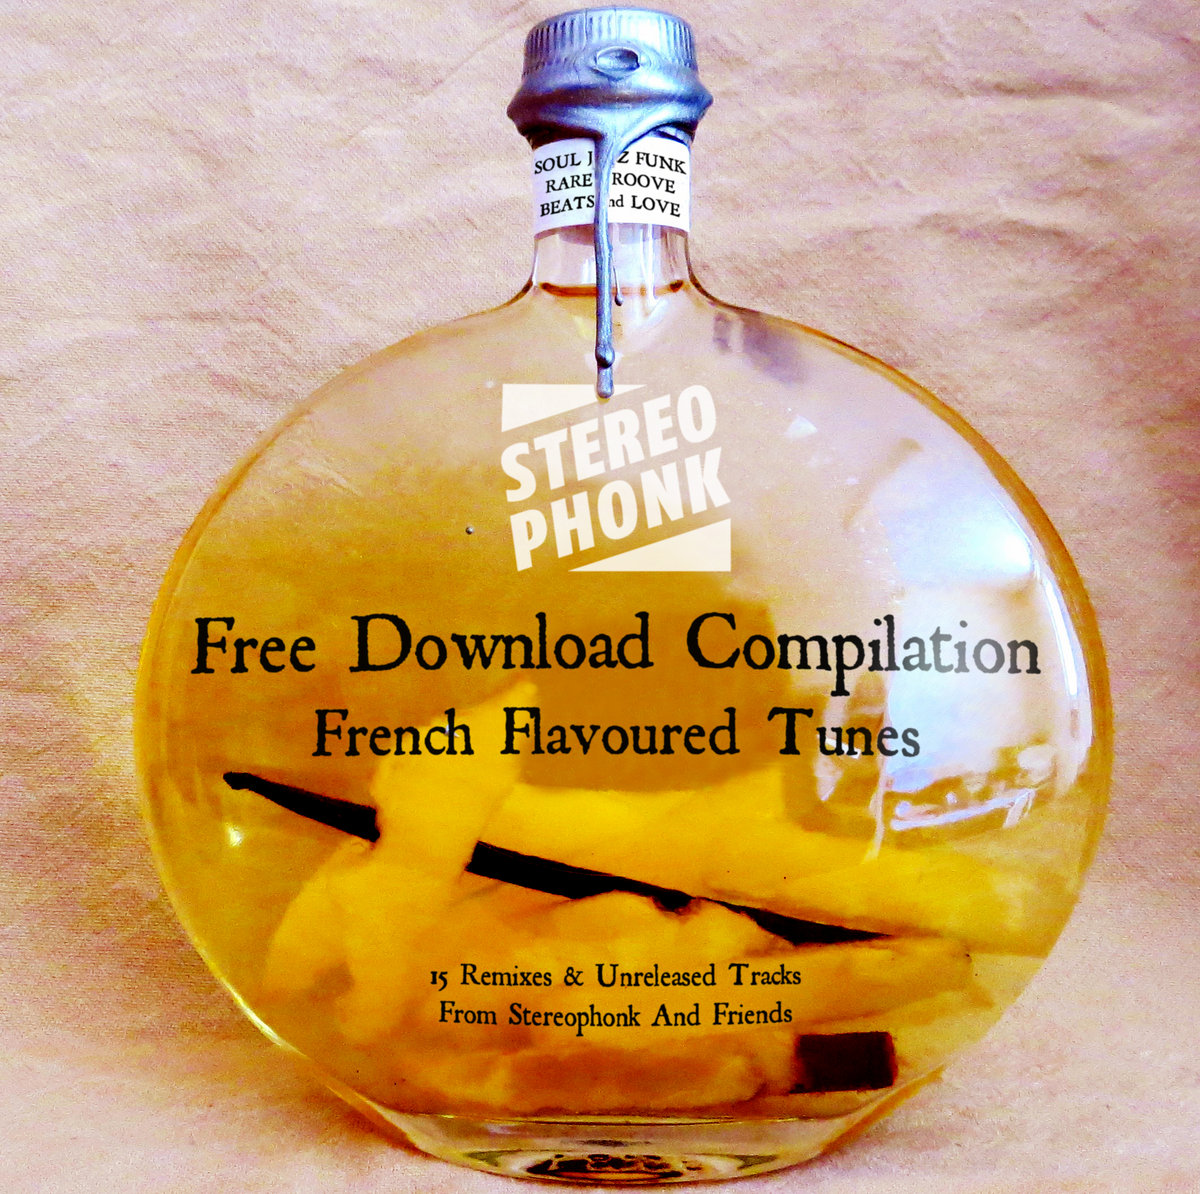 STEREOPHONK : FRENCH FLAVOURED TUNES (FREE DOWNLOAD)